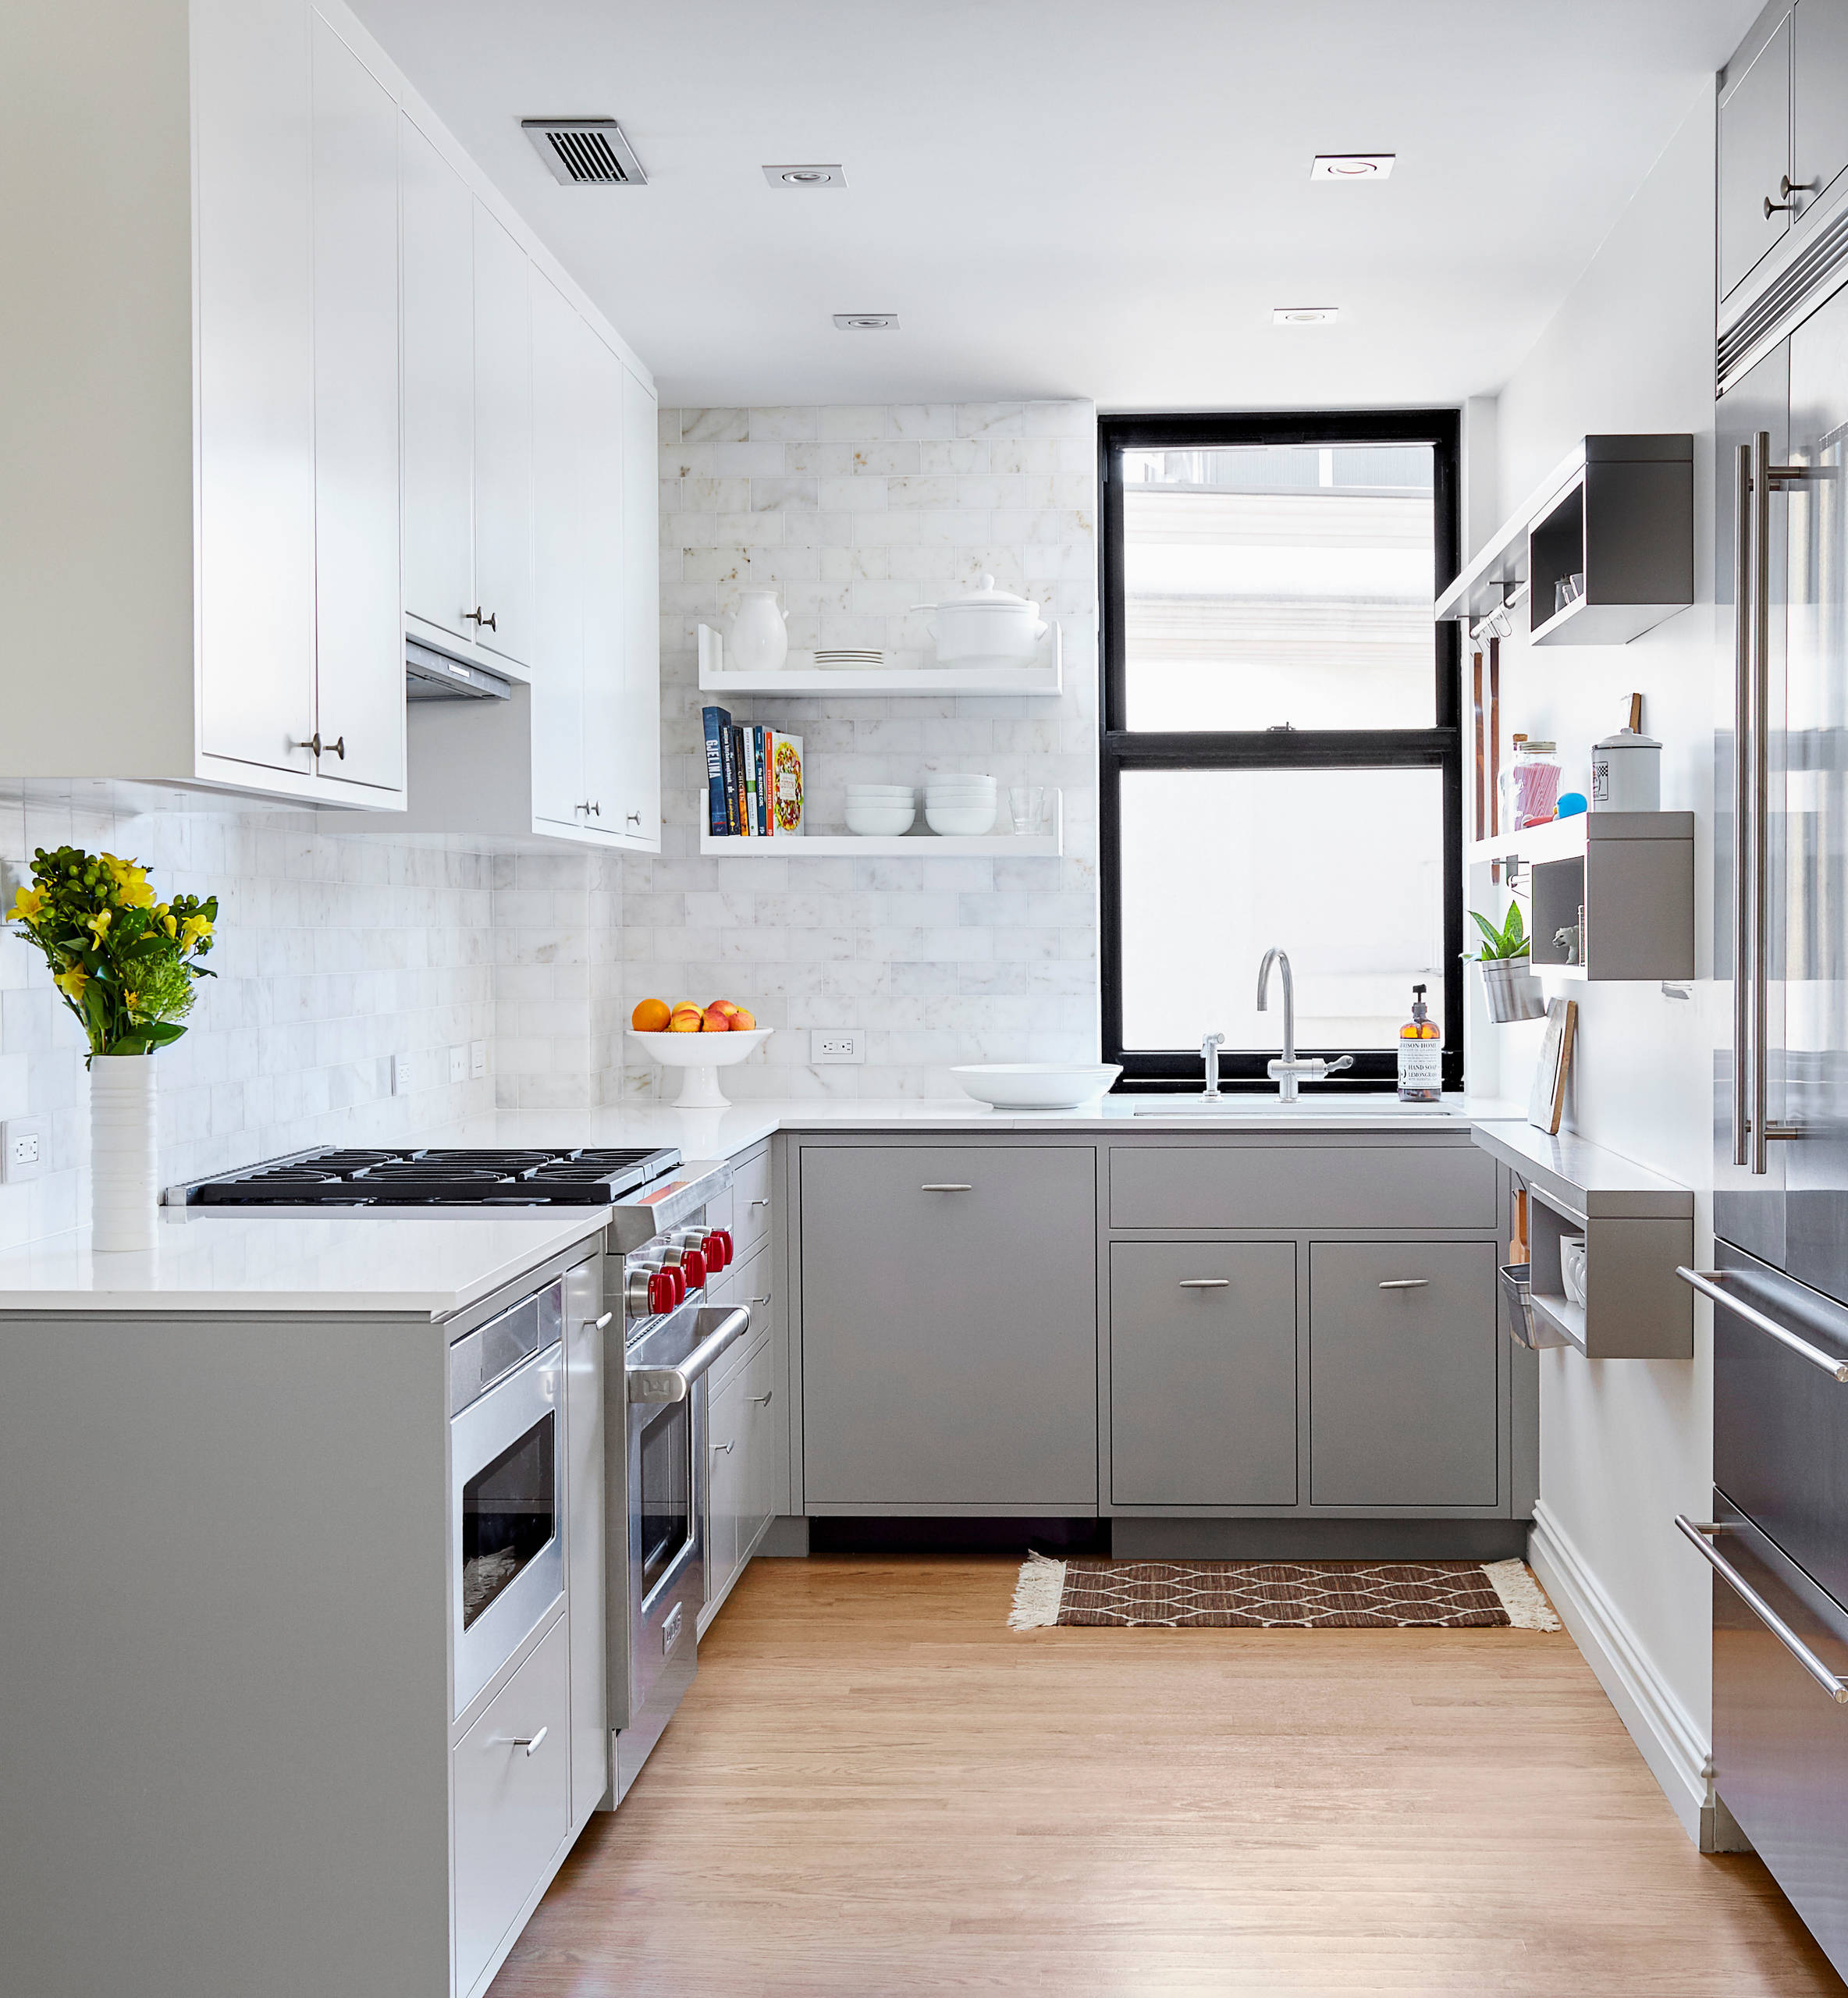 75 Beautiful Small White Kitchen Pictures Ideas June 2021 Houzz